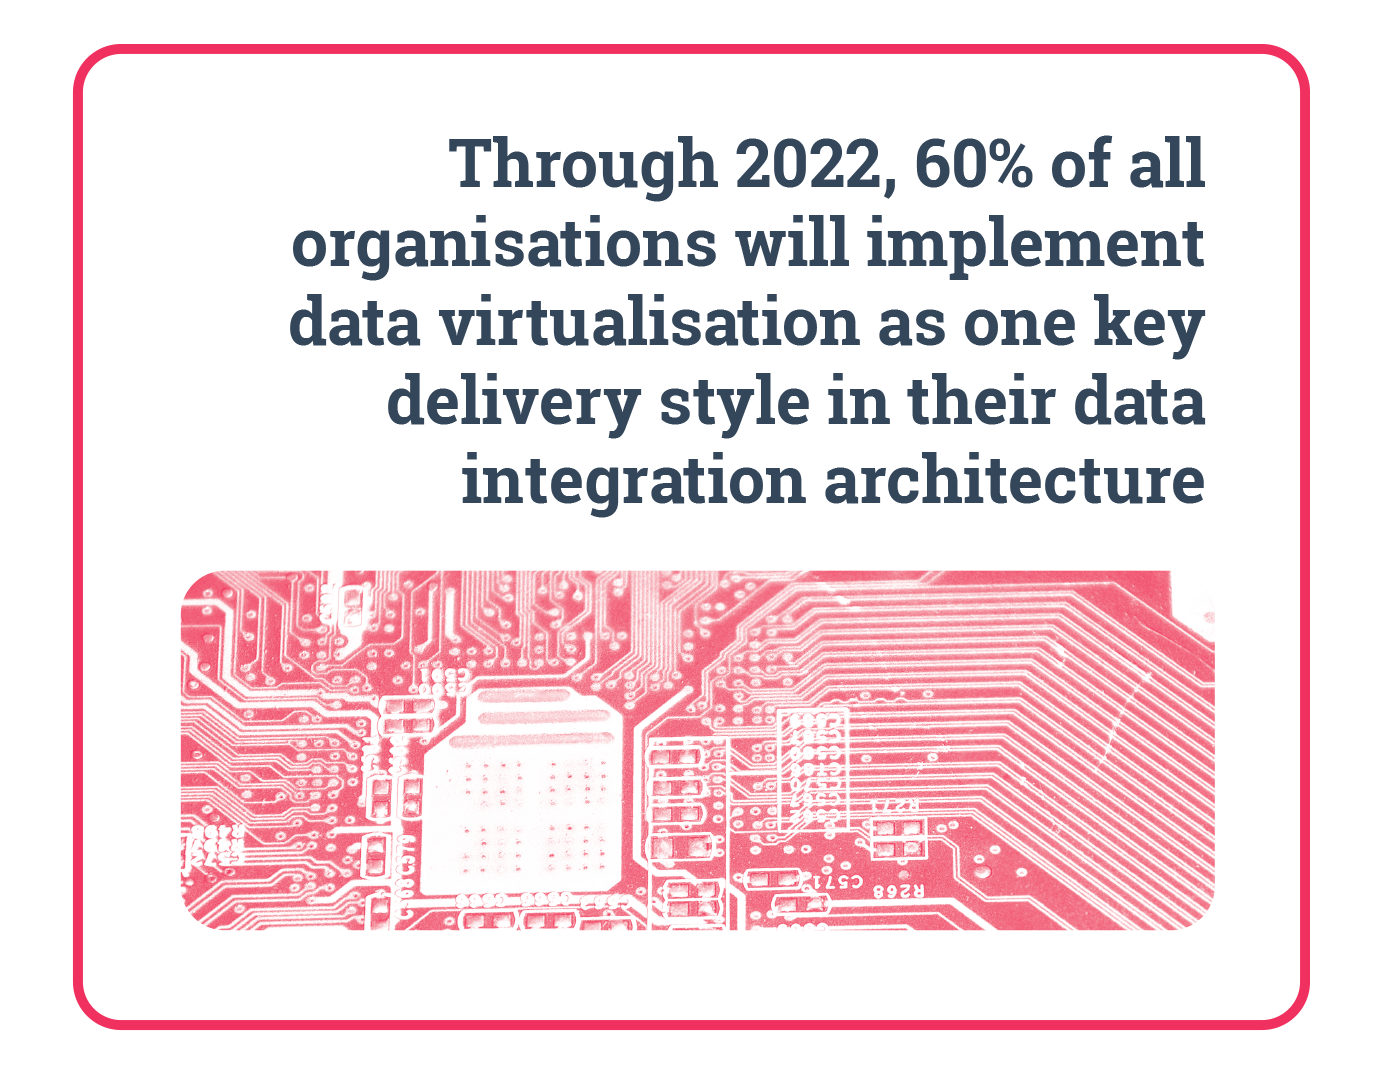 Through 2022, 60% of all organisations will implement data virtualisation as one key delivery style in their data integration architecture.